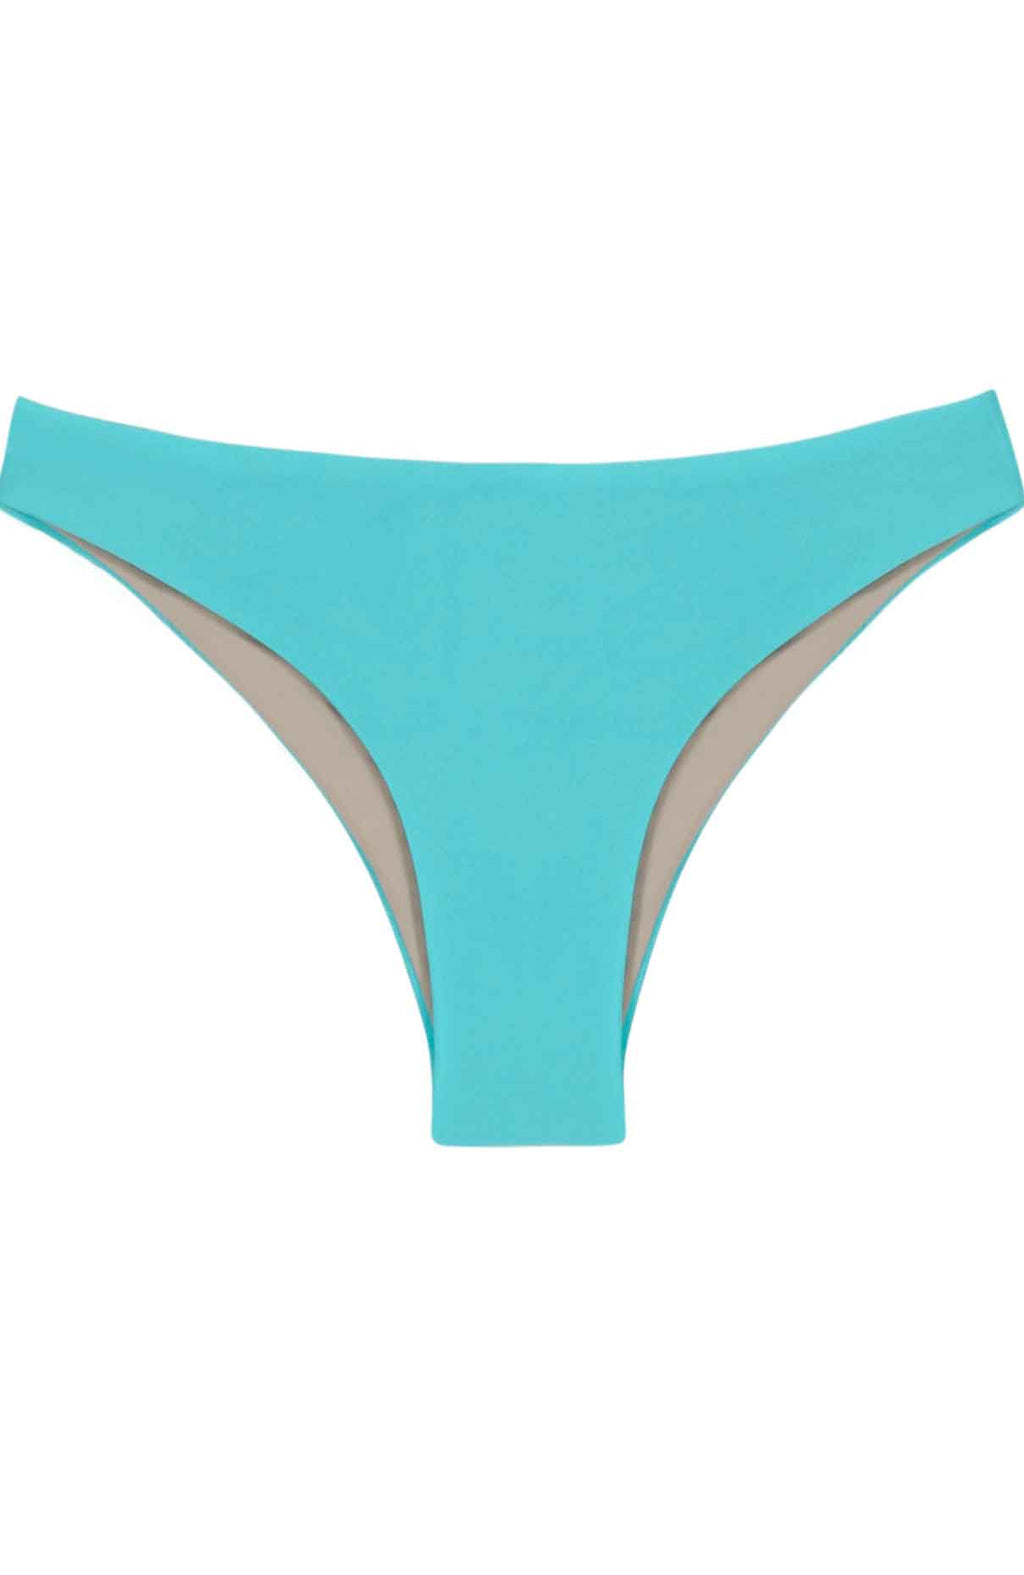 PilyQ Salt Water Basic Ruched Teeny Cut Bikini Bottom